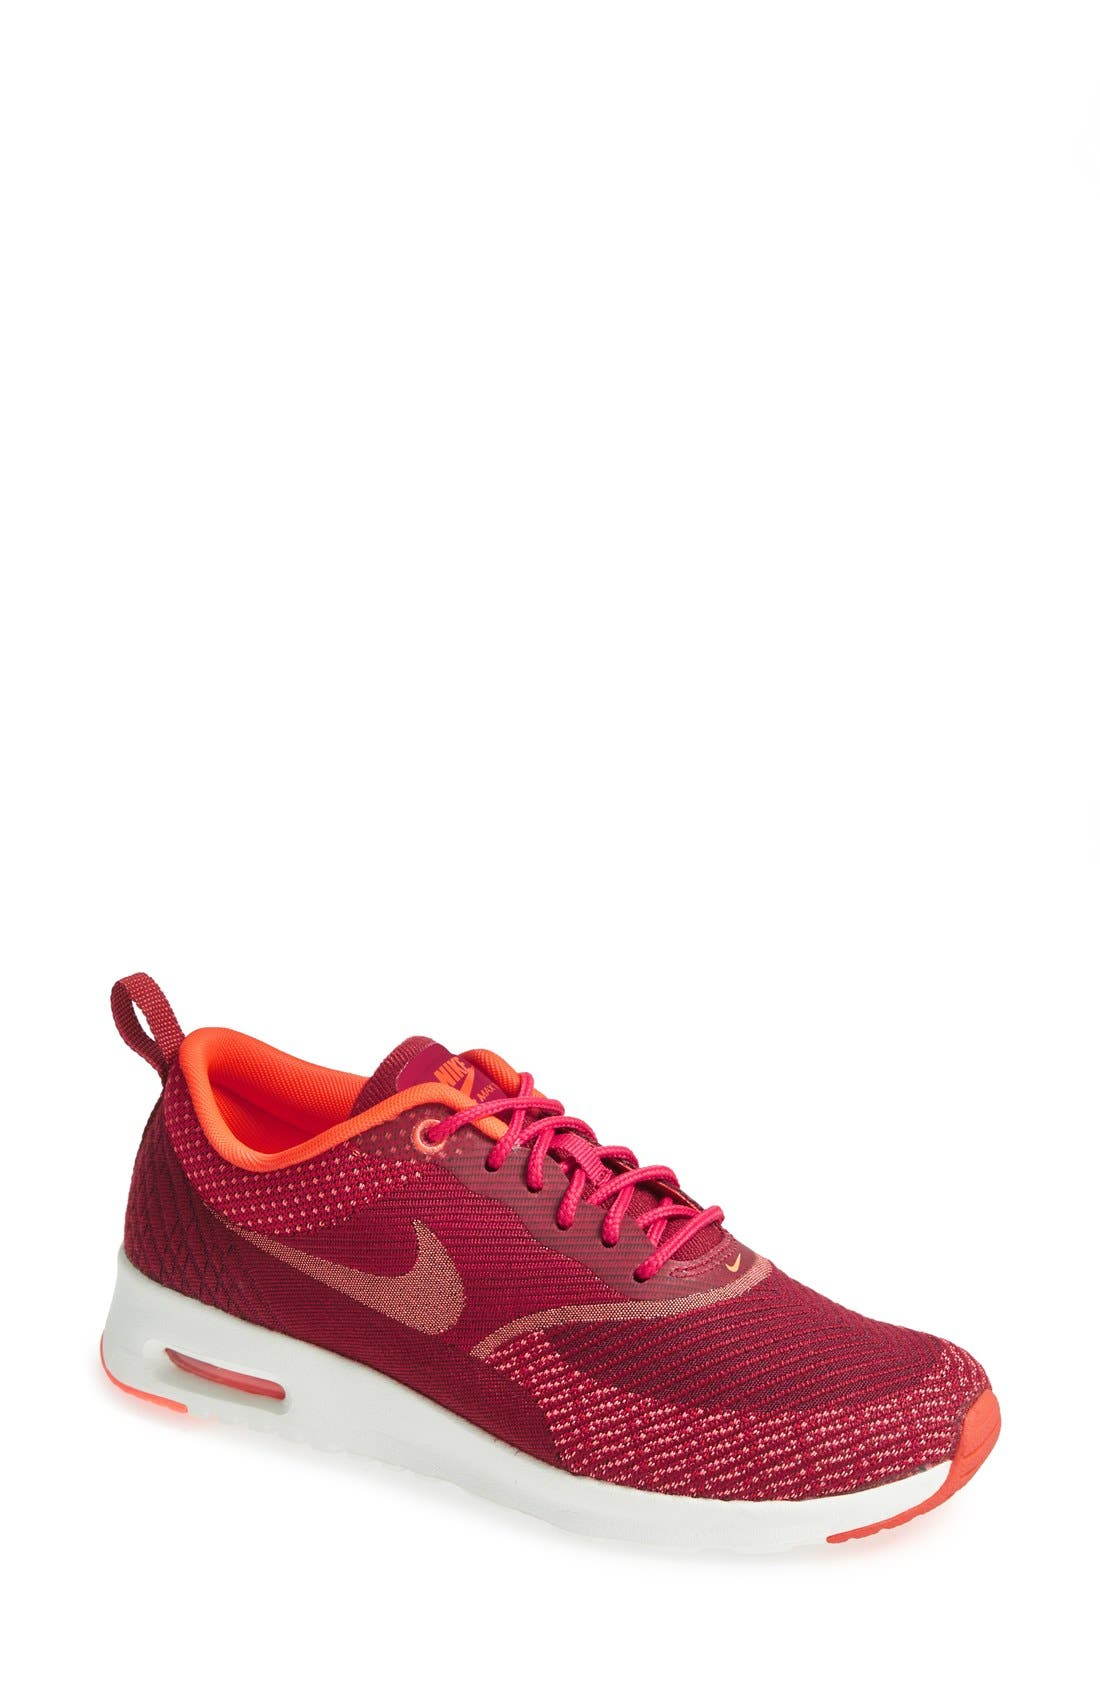 Alternate Image 1 Selected - Nike 'Air Max Thea' Jacquard Sneaker (Women)